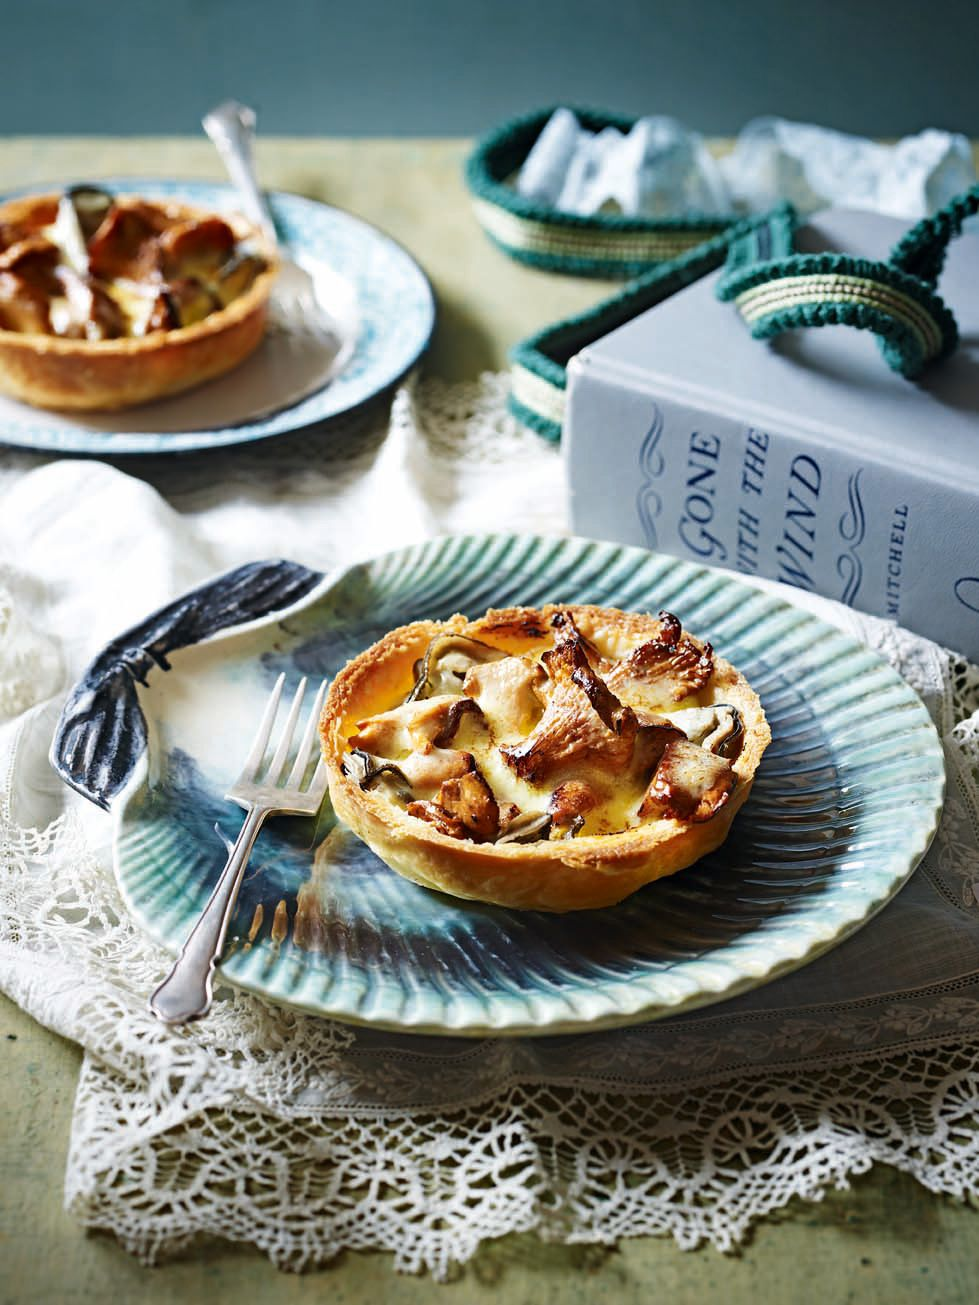 Smoked Haddock, Gruyère and Saffron Tart Recipe forecasting